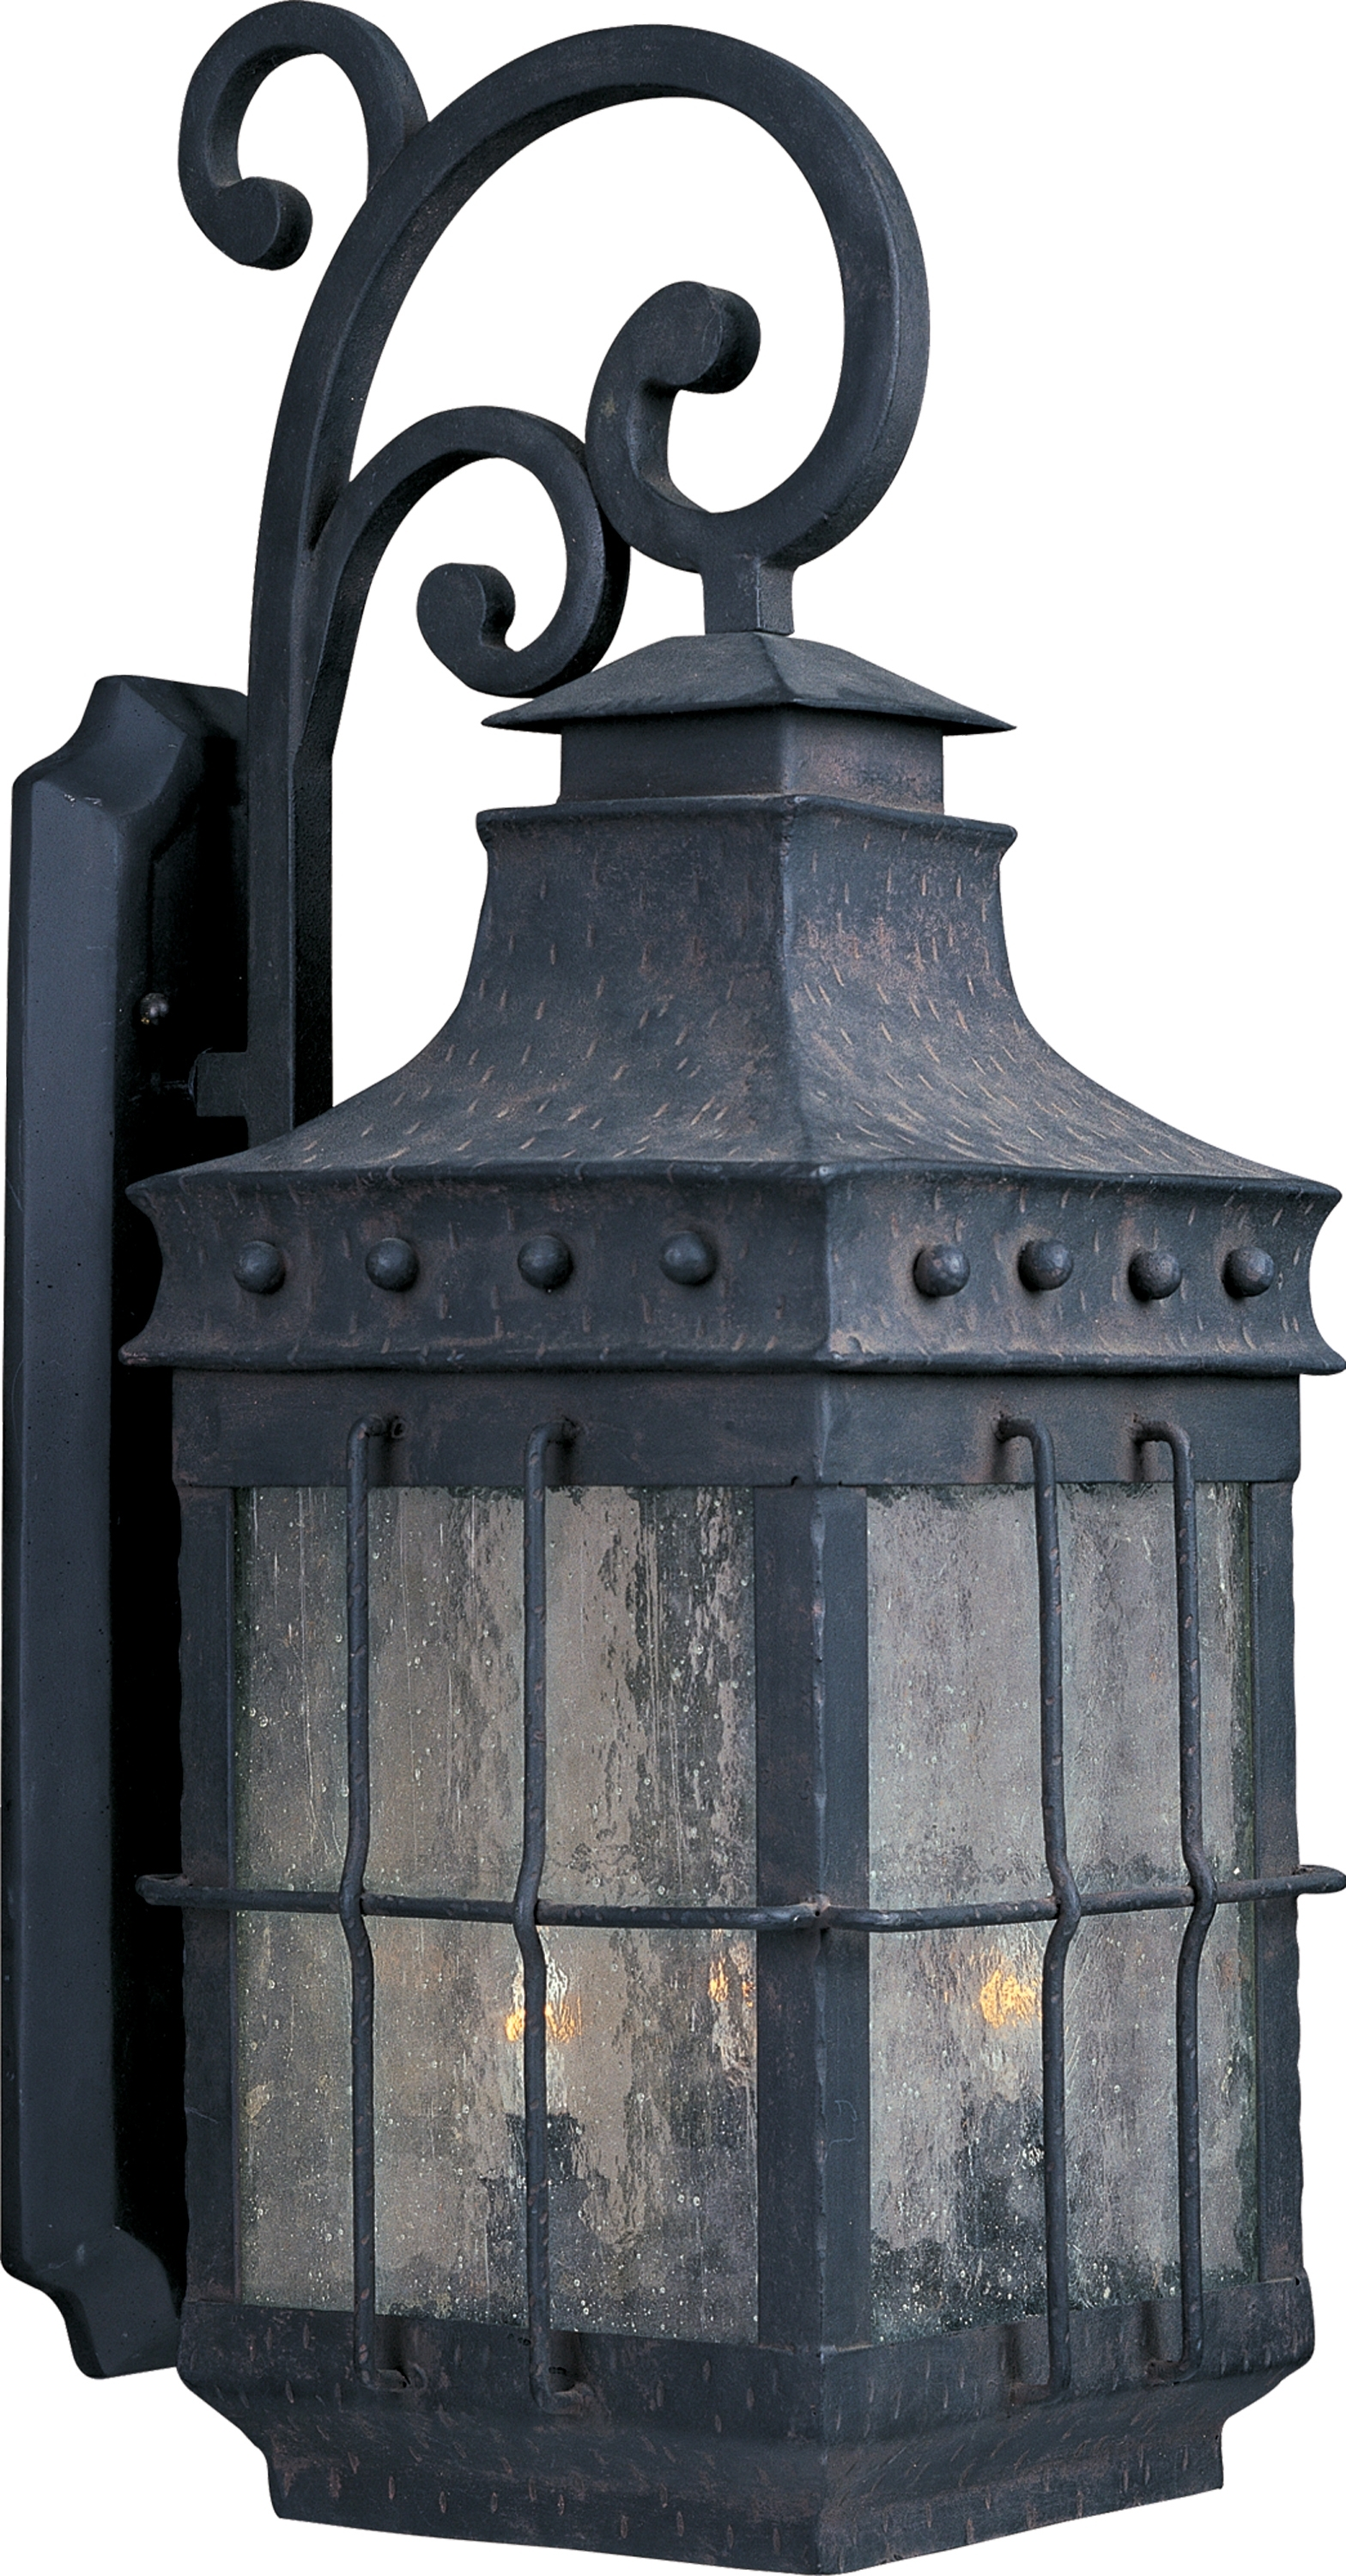 Nantucket Outdoor Lanterns For Latest Nantucket 4 Light Outdoor Wall Lantern (View 7 of 20)